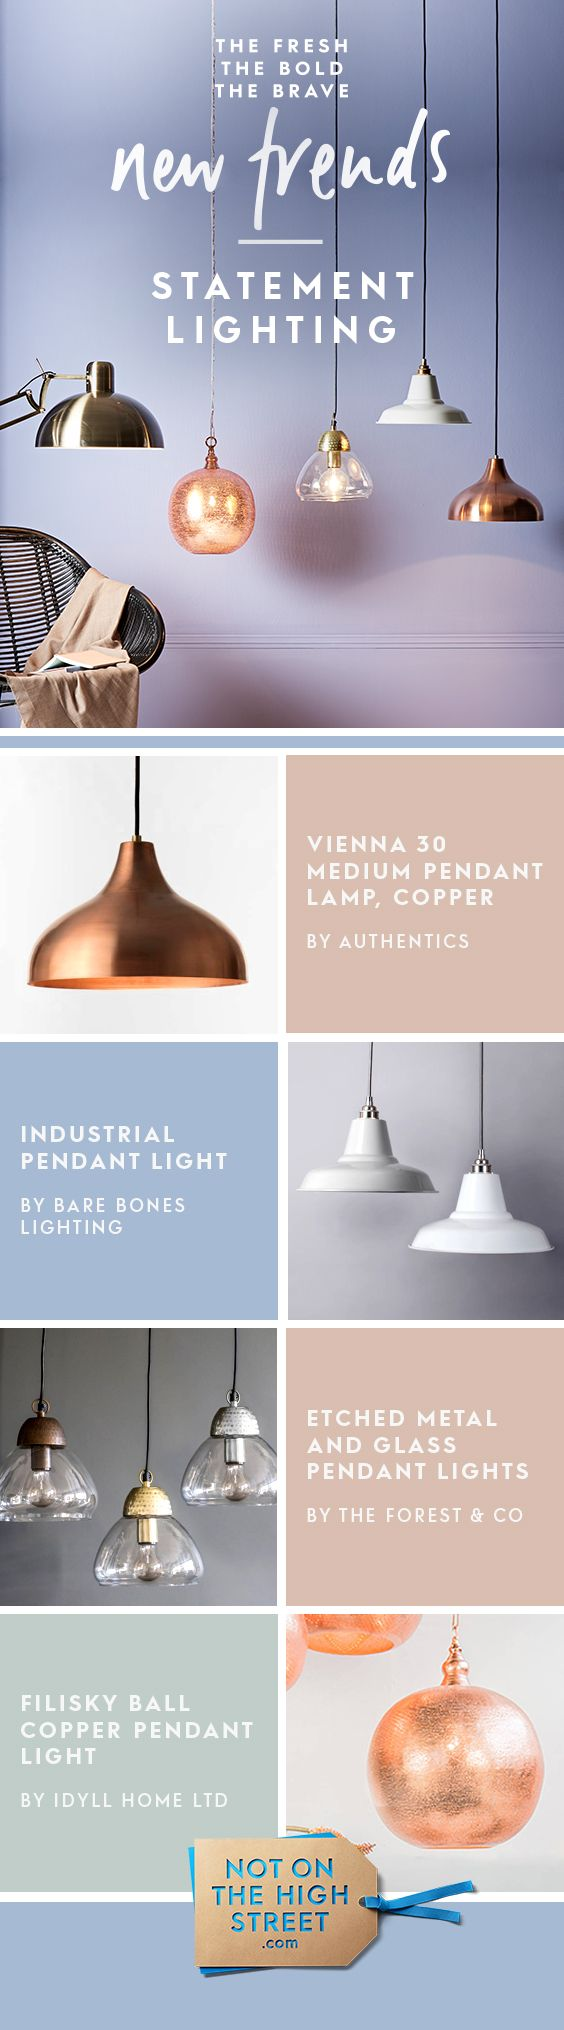 Decorative lighting is an artform in itself, with designs that catch the eye whether the bulb is one or off. Consider mixing different styles with complementary tones or mixed metals.